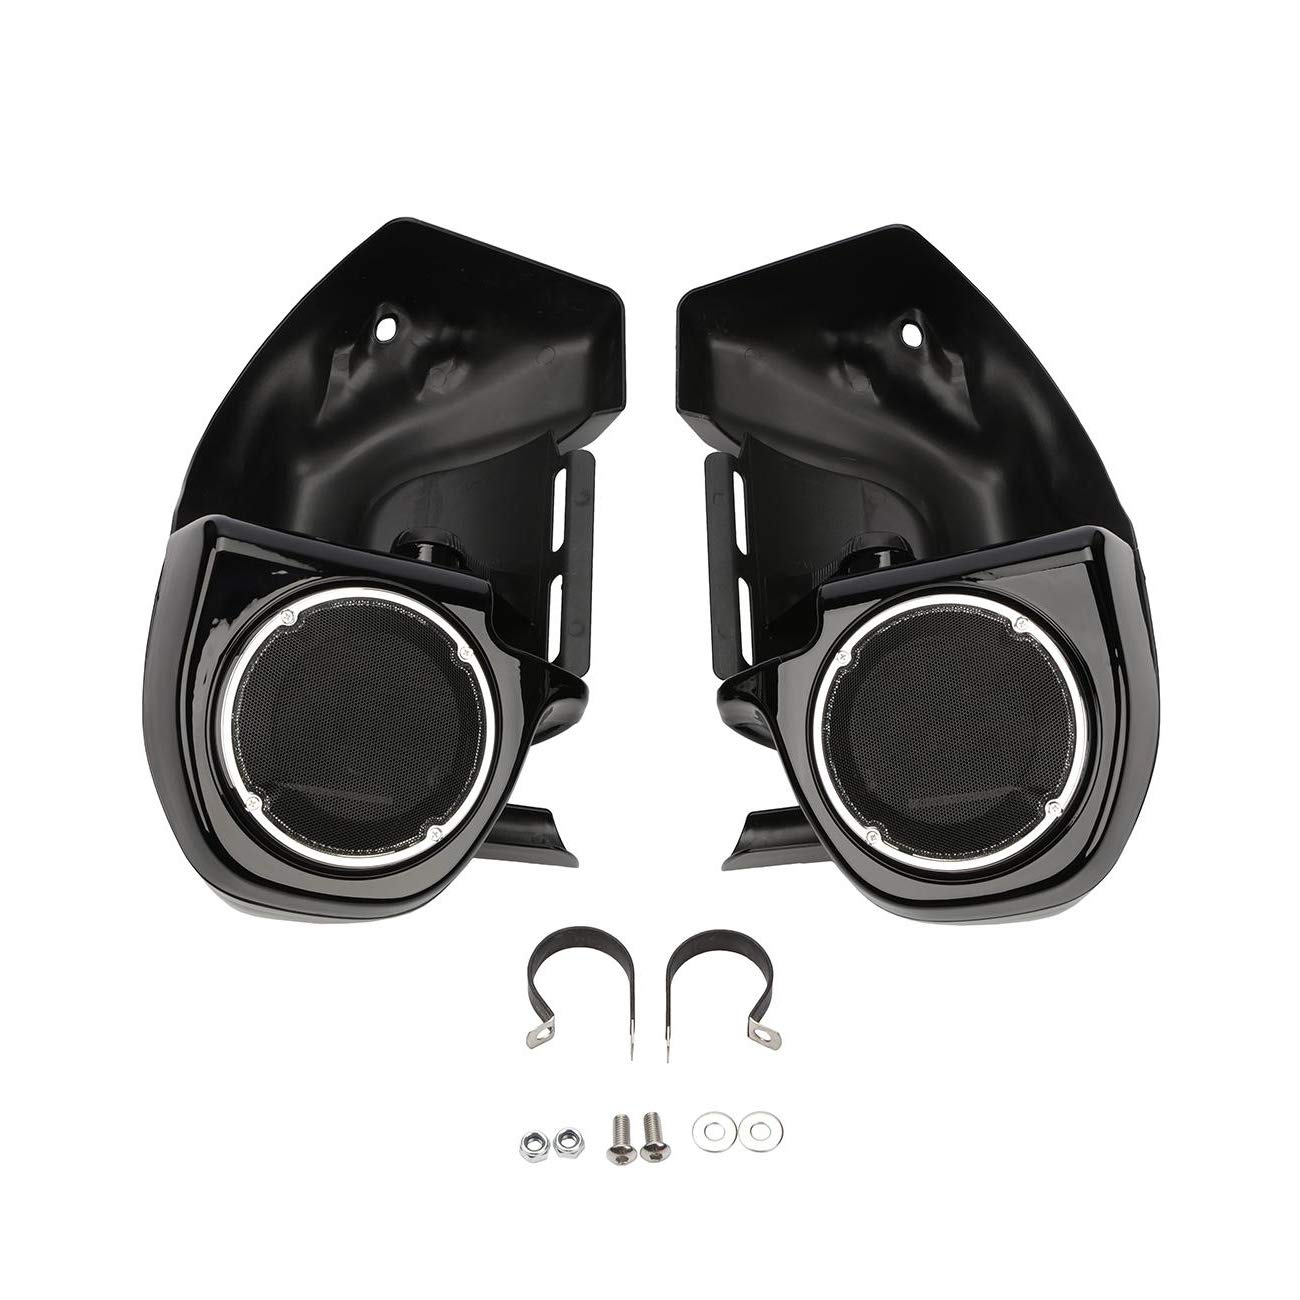 INNOGLOW Motorcycle Lower Vented Fairing with Speaker Pod 1 Pair Fits for 1989-2013 All Touring Models